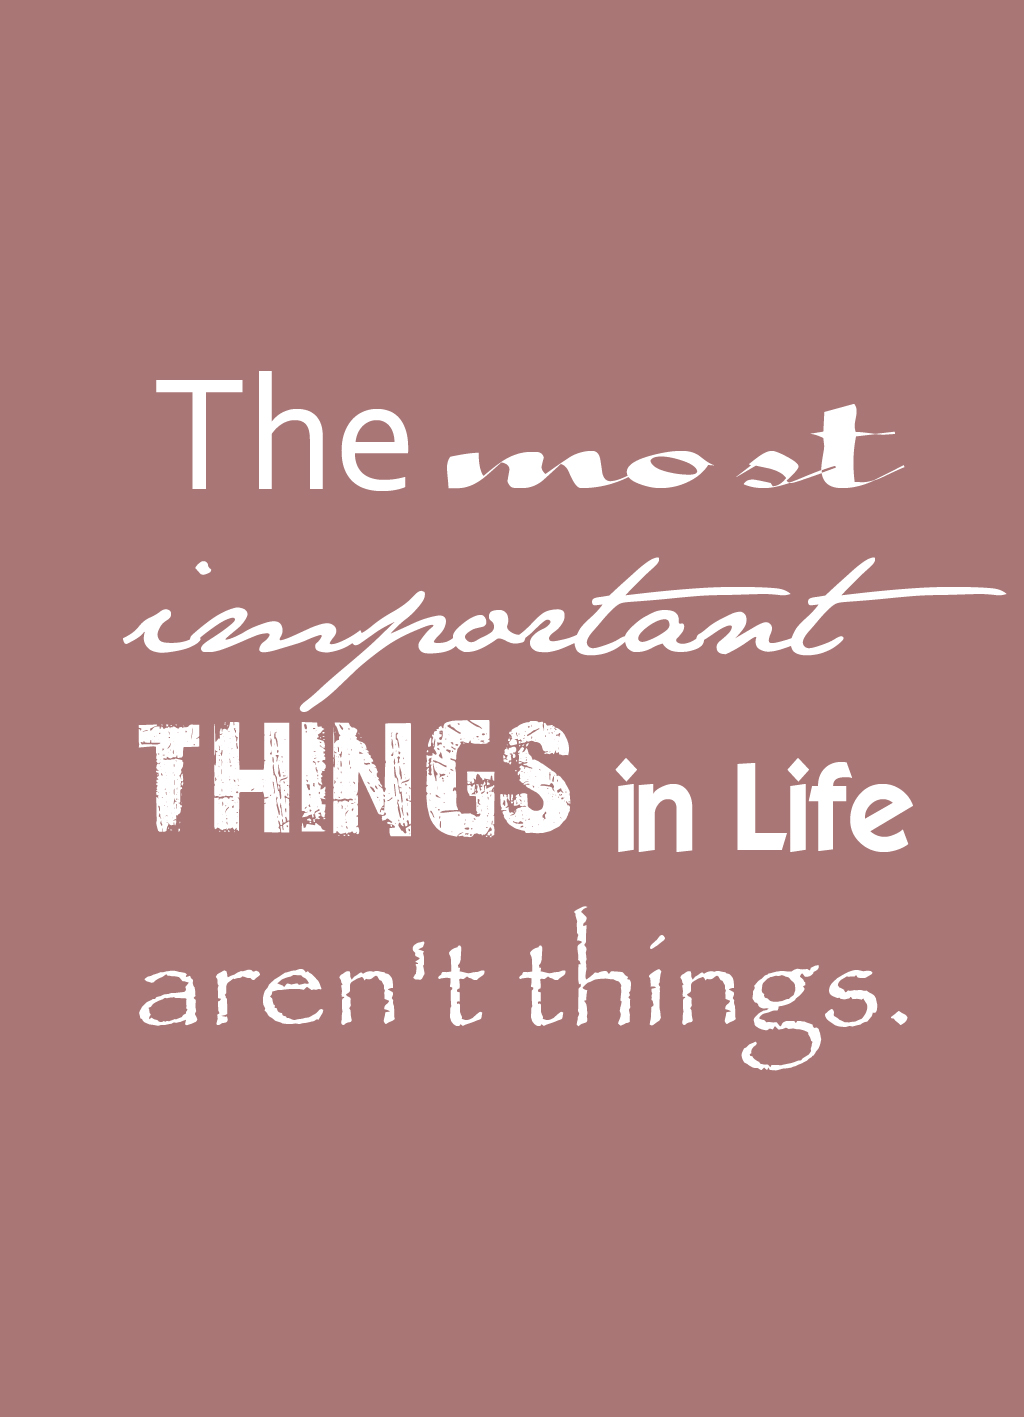 Quote of the Day :: The most important things in life aren't things